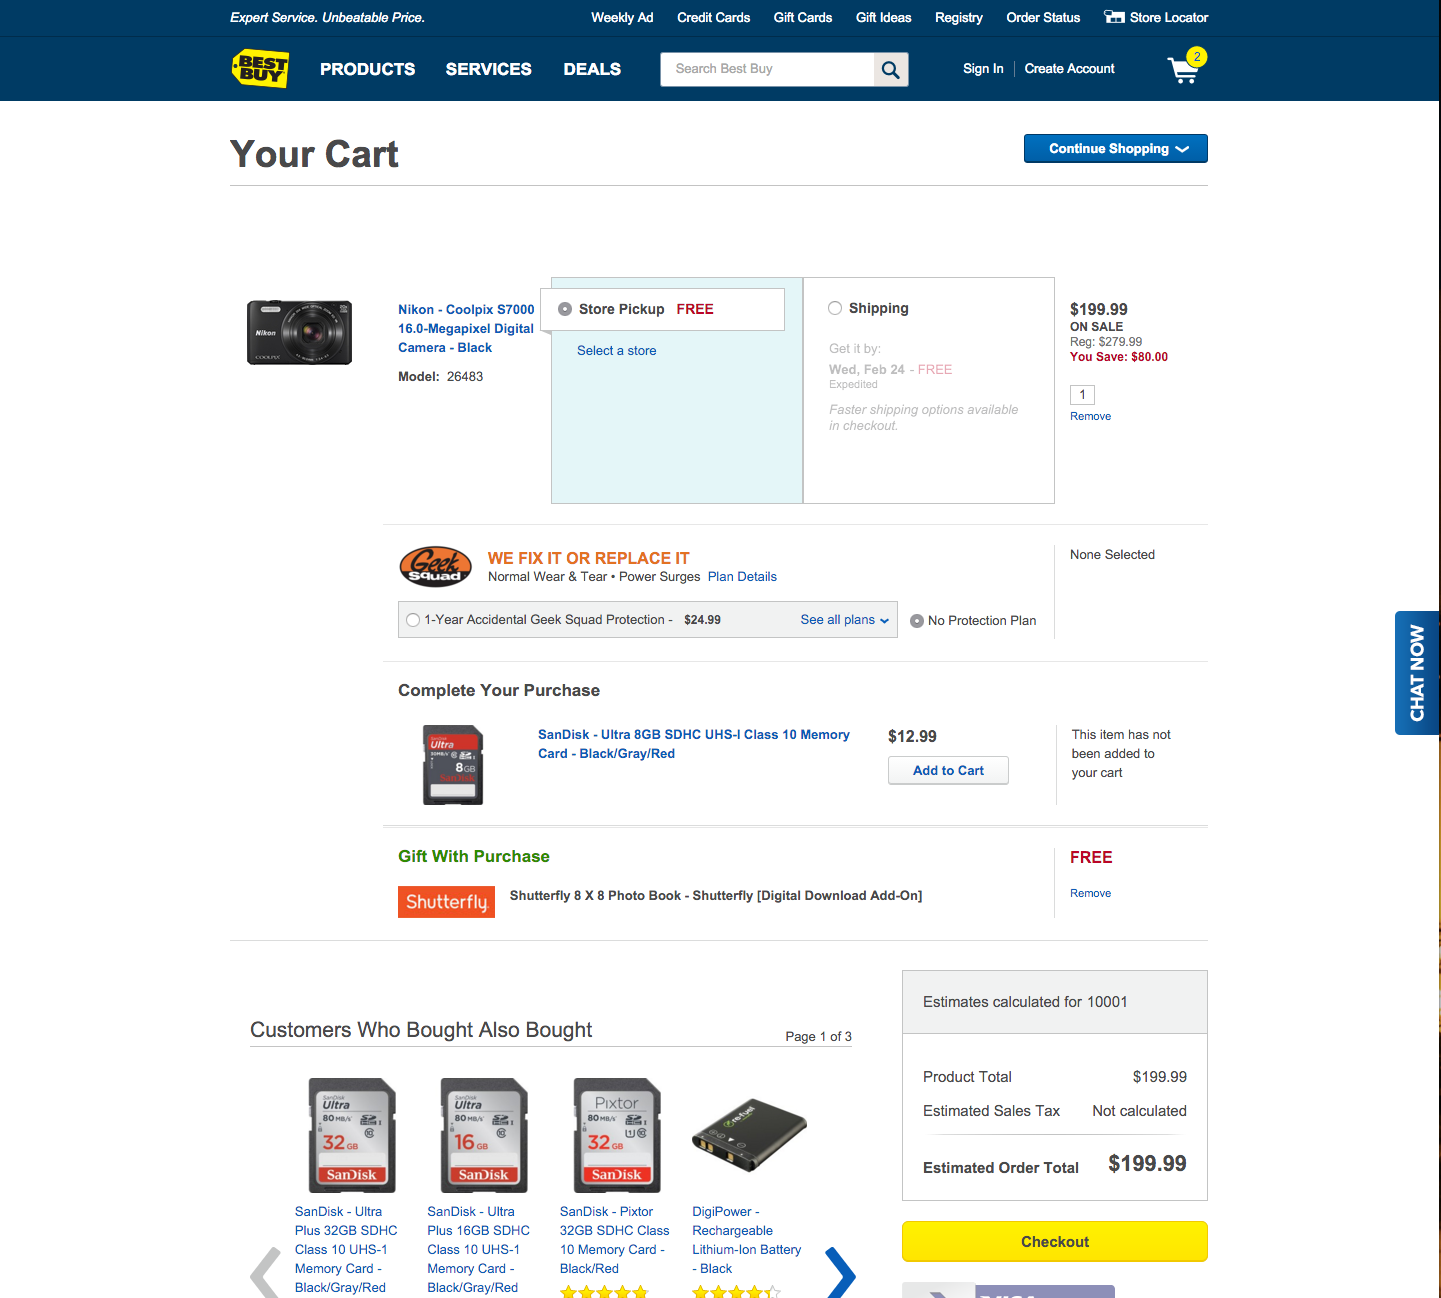 WhyBest Buy is doing a bad job at checkout